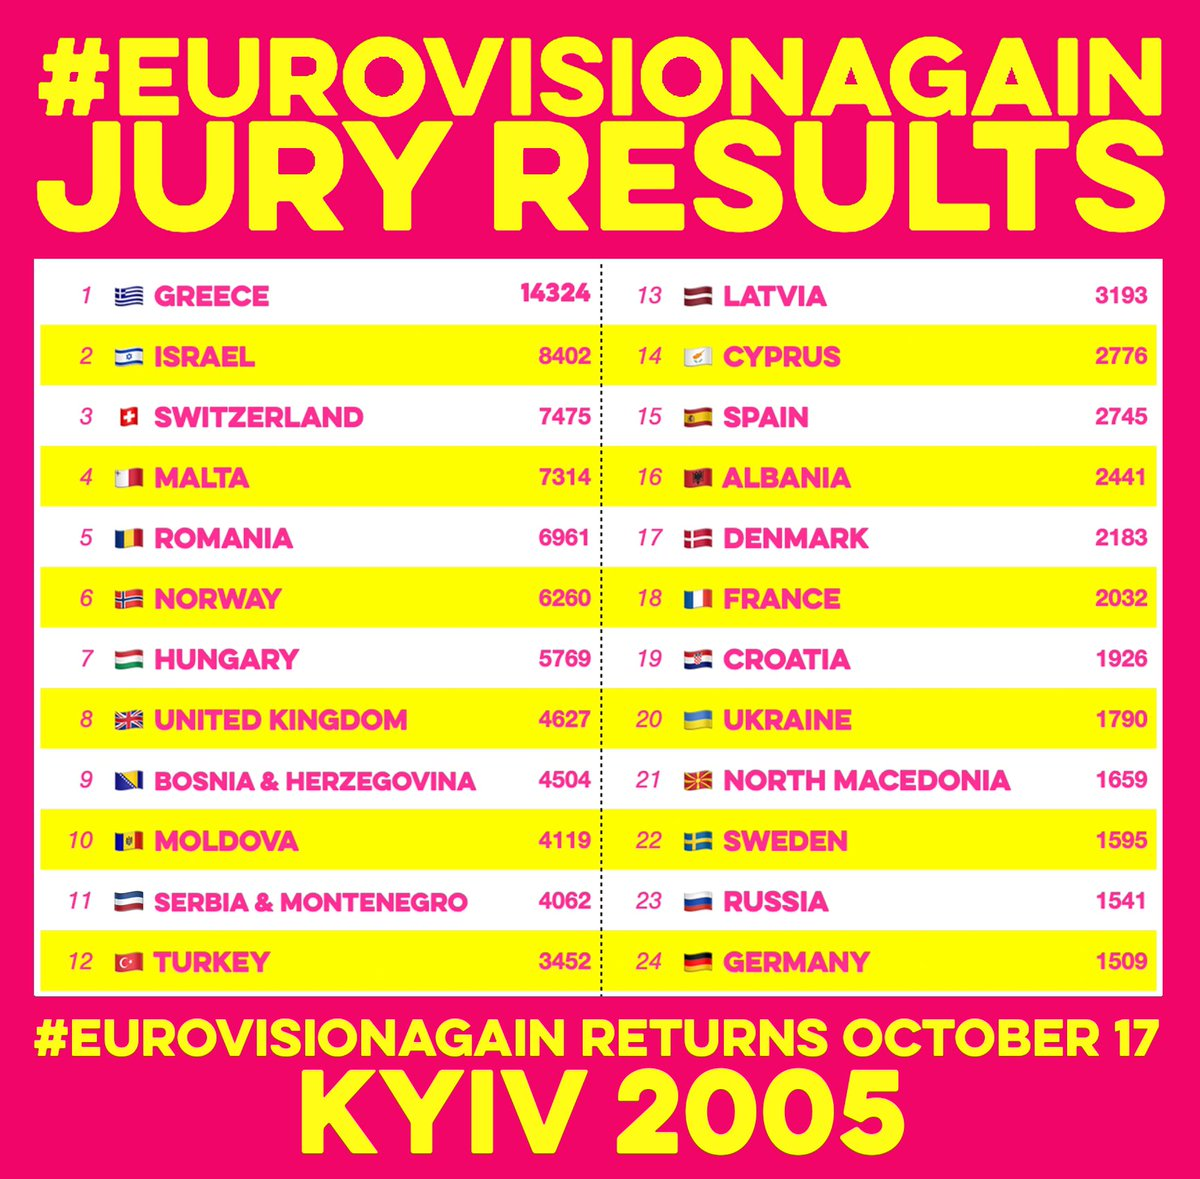 🗳 #EurovisionAgain Results 🗳  Votes have been checked and verified.  Thank you @Mentimeter 🙏   Here are the scores from the KYIV 2005 Twitter jury 🇺🇦   ✨ GREECE WINS ✨   🥇 🇬🇷 🥈 🇮🇱🥉🇨🇭  Congratulations @paparizouhelena https://t.co/r2XChRYOX3